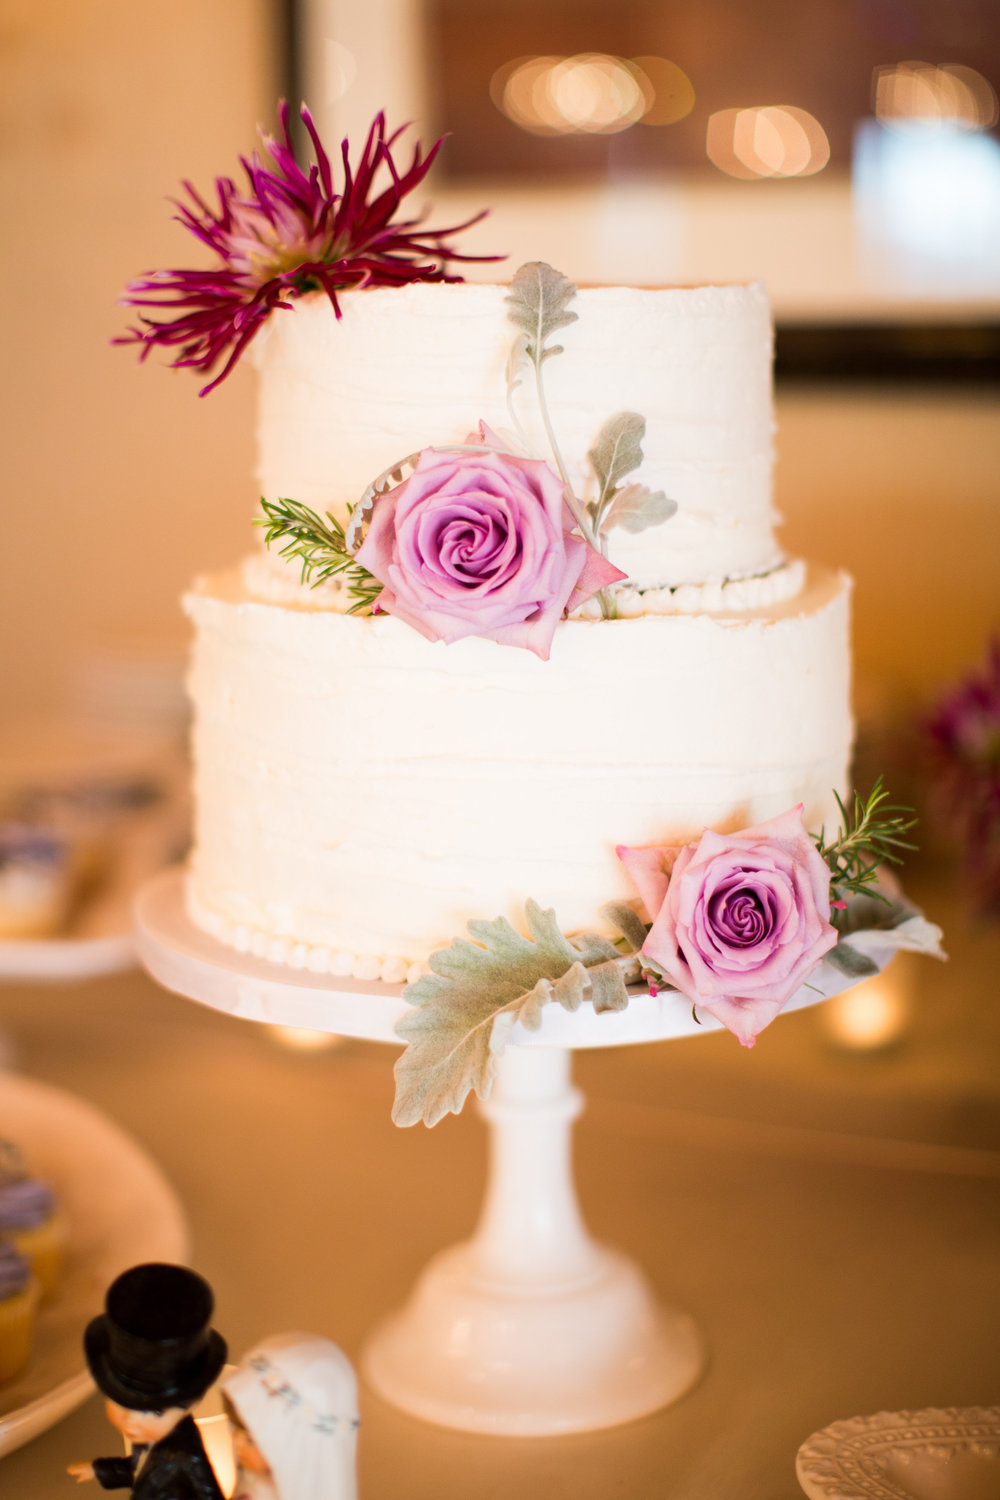 Seattle Wedding Planner, Wedding Wise | Ciccarelli Photography | Edgewater Hotel Wedding | Buttercream Cake with Purple Flowers